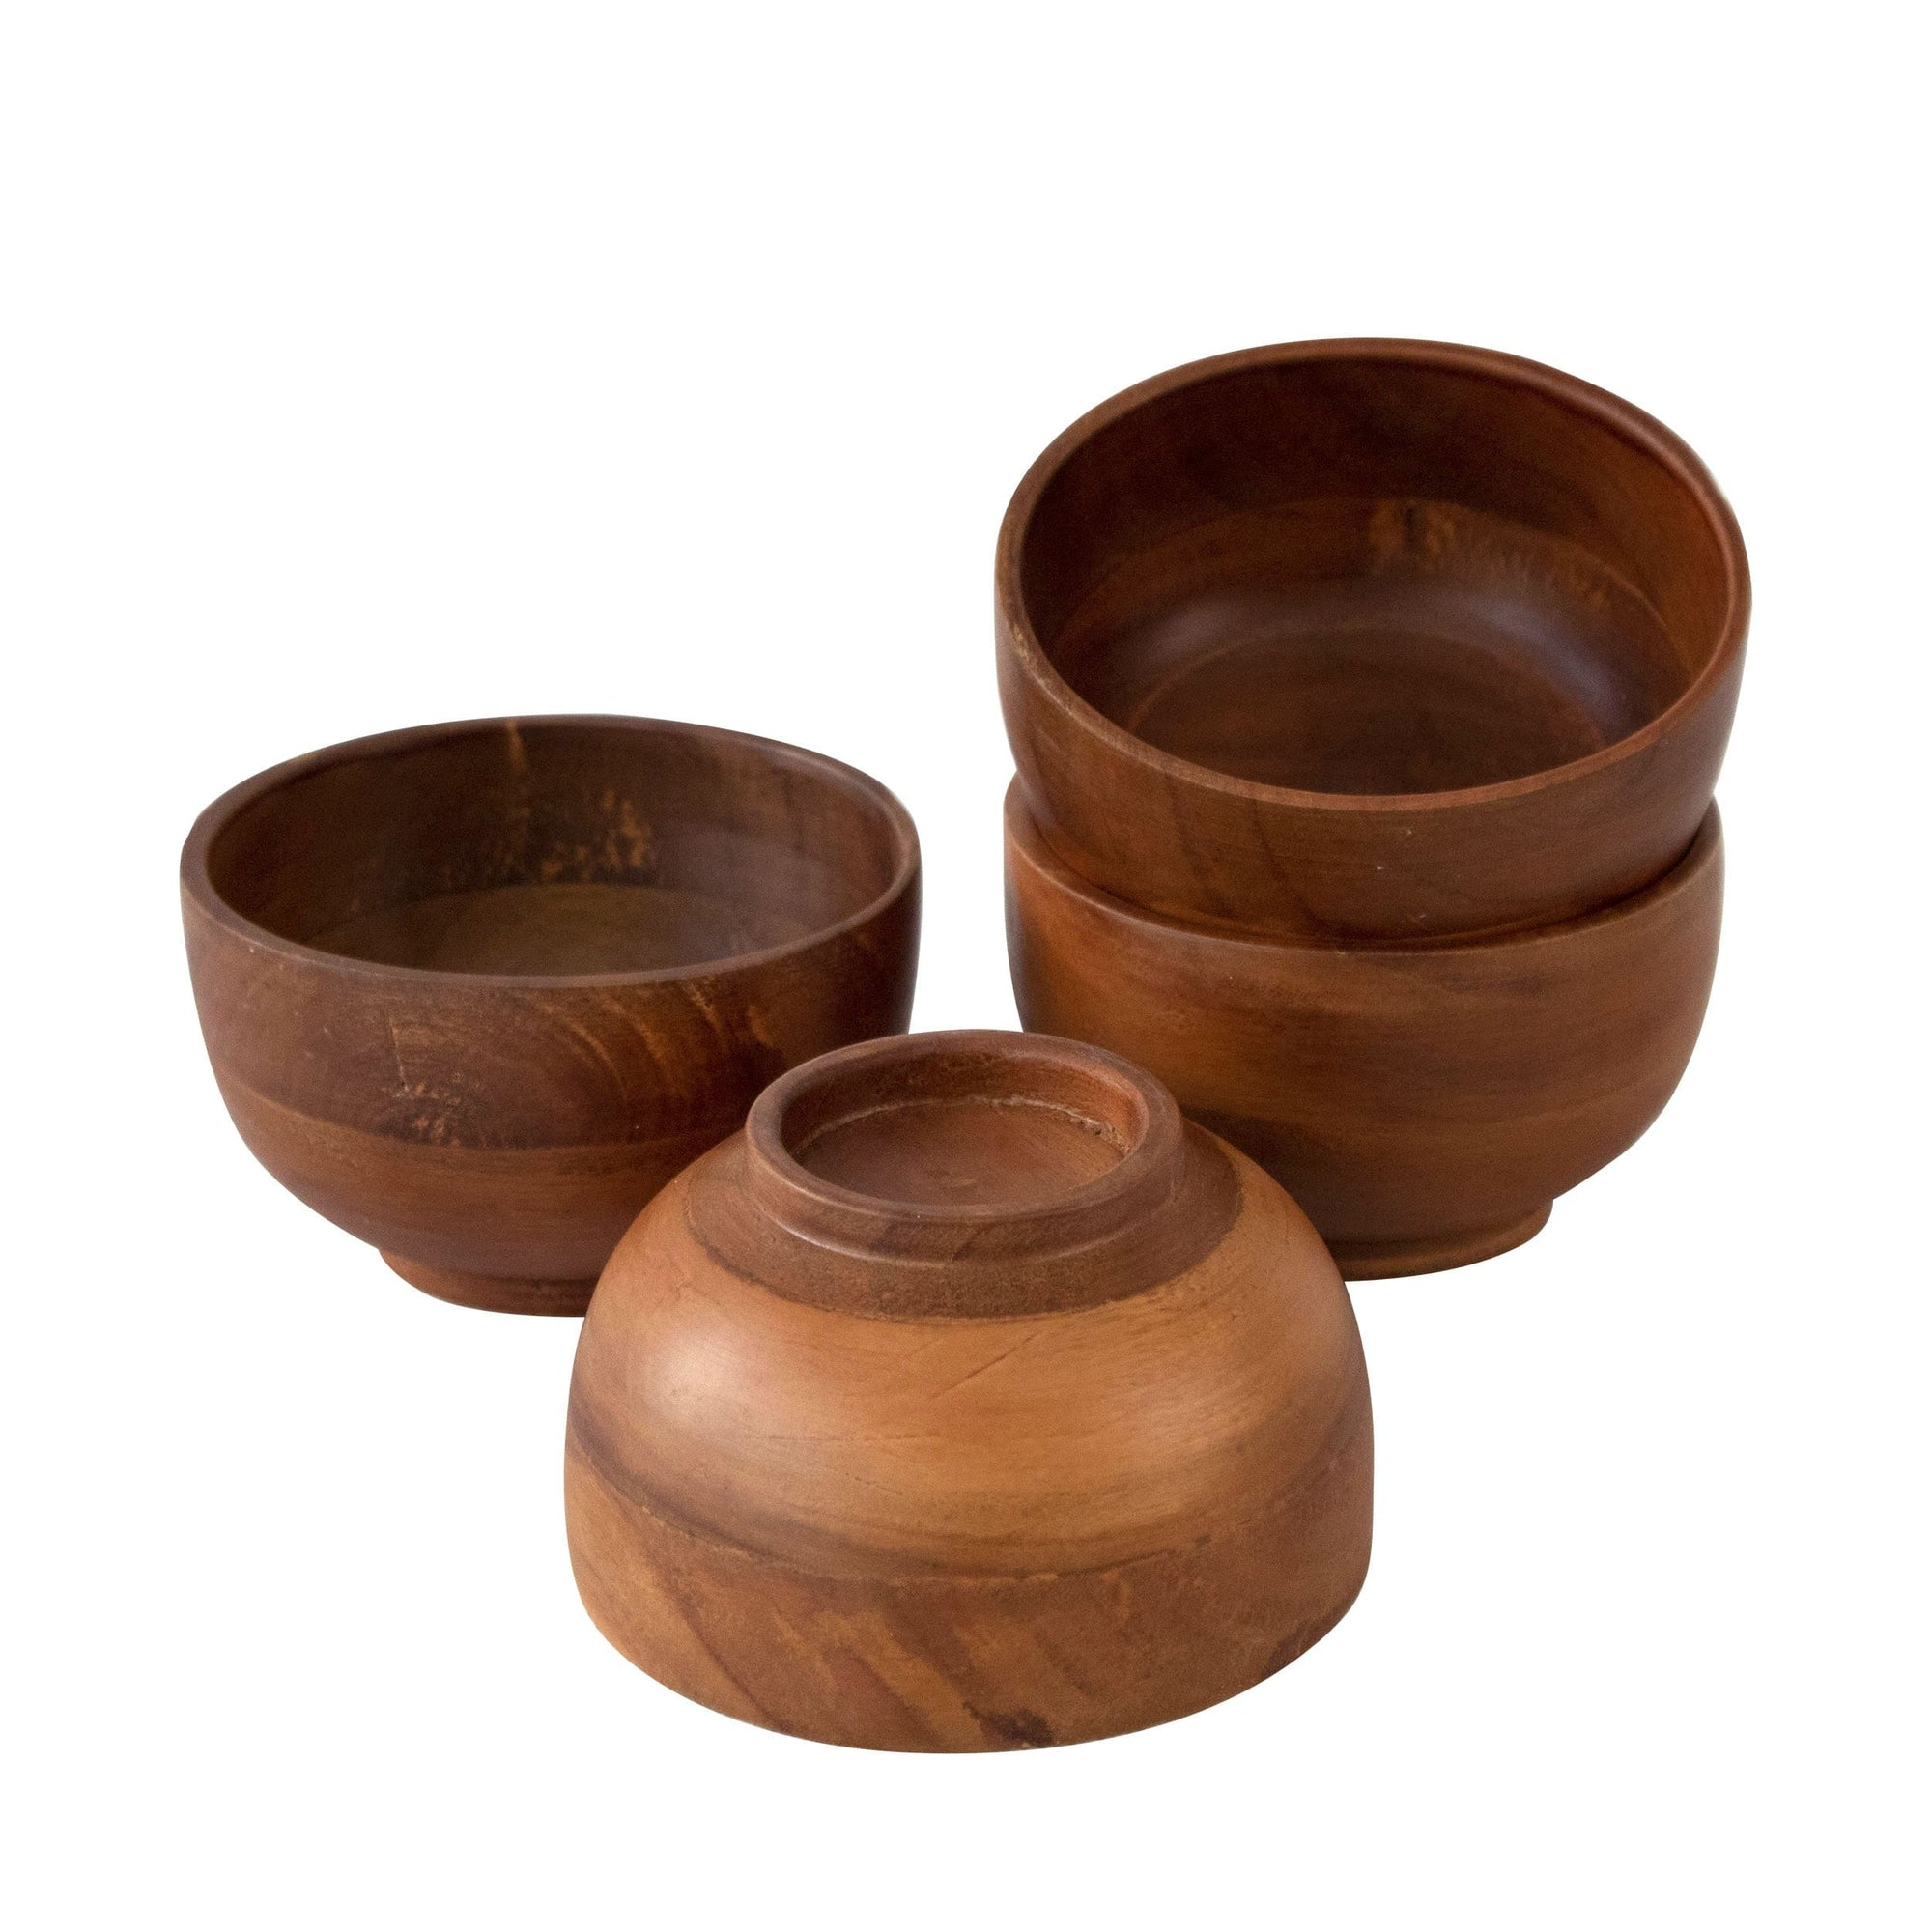 Made Terra Acacia Wood Rice Miso Soup Bowls | Organic Wooden Bowl Serving Soup Food Salads Trifle Dip Coffee Dining Party and Farmhouse Rustic Tabletop Decor (Set 4)